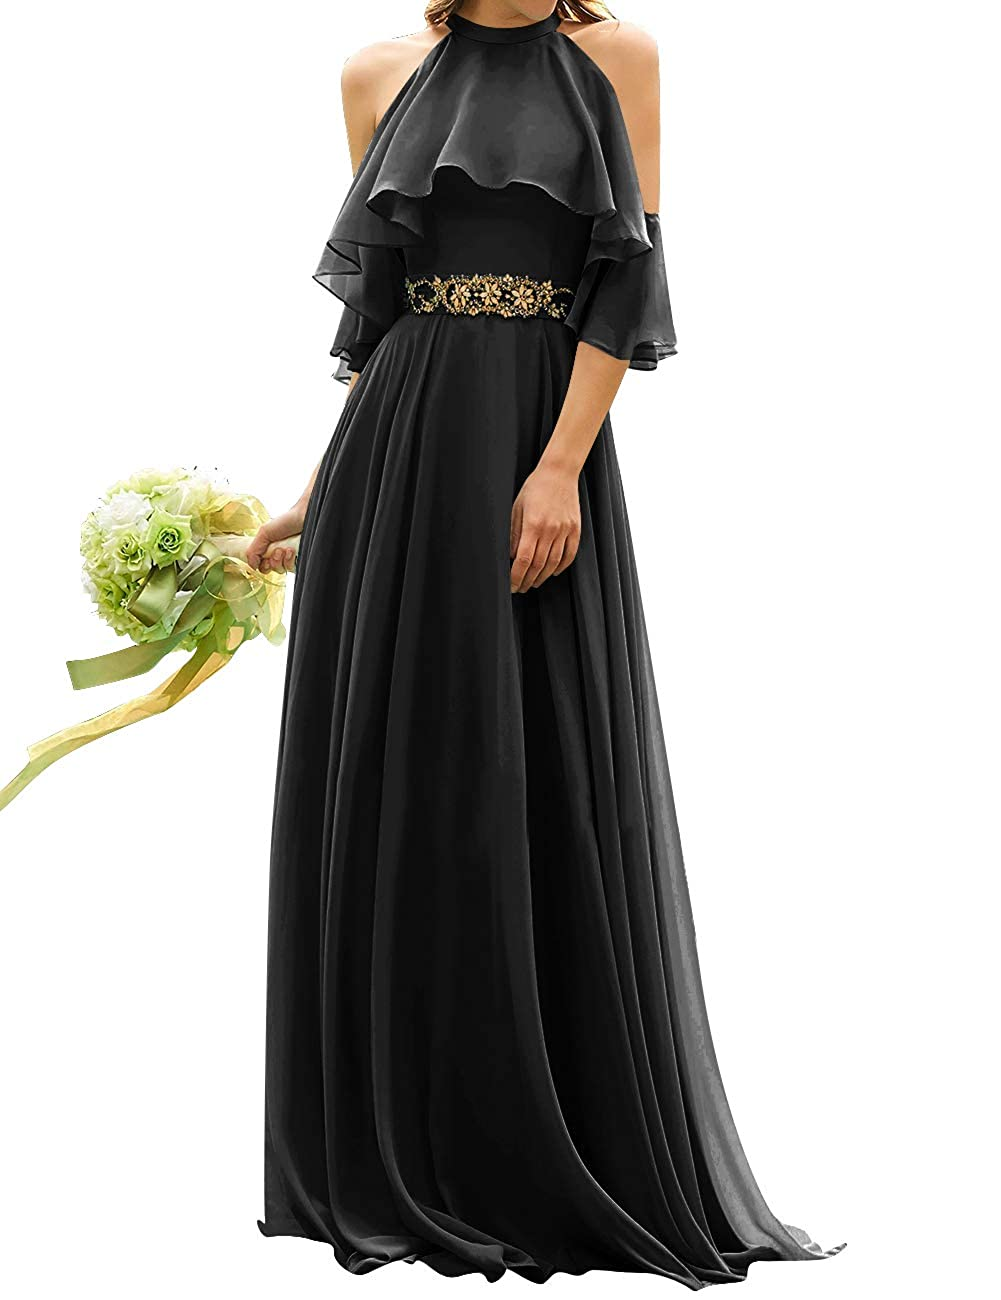 Black Uther Long Bridesmaid Dress Cold Shoulder Beaded Ruffle Sleeves Wedding Party Dresses